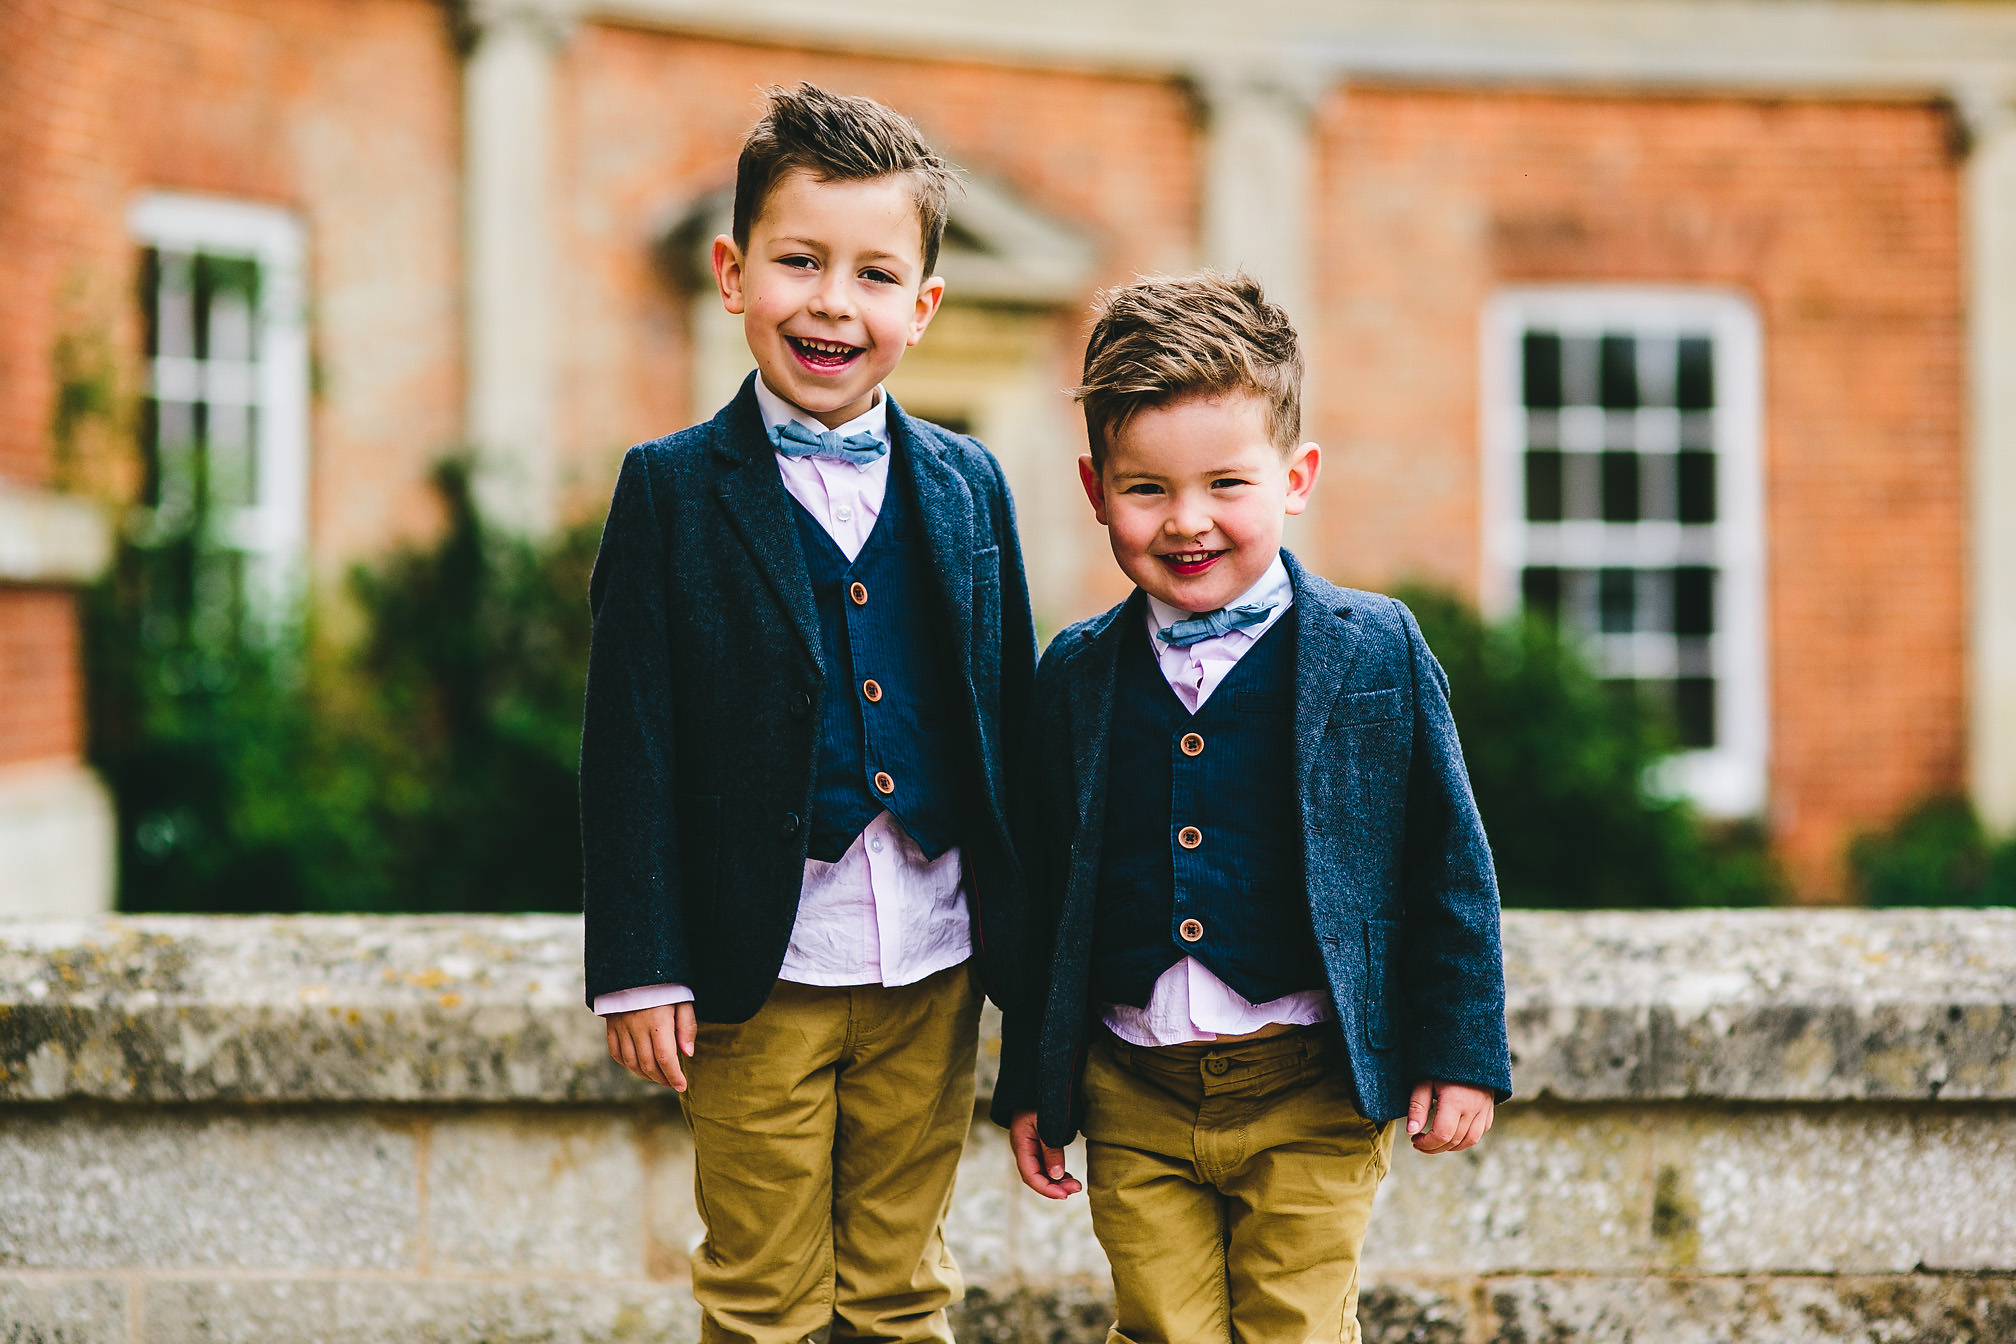 Two young wedding guests